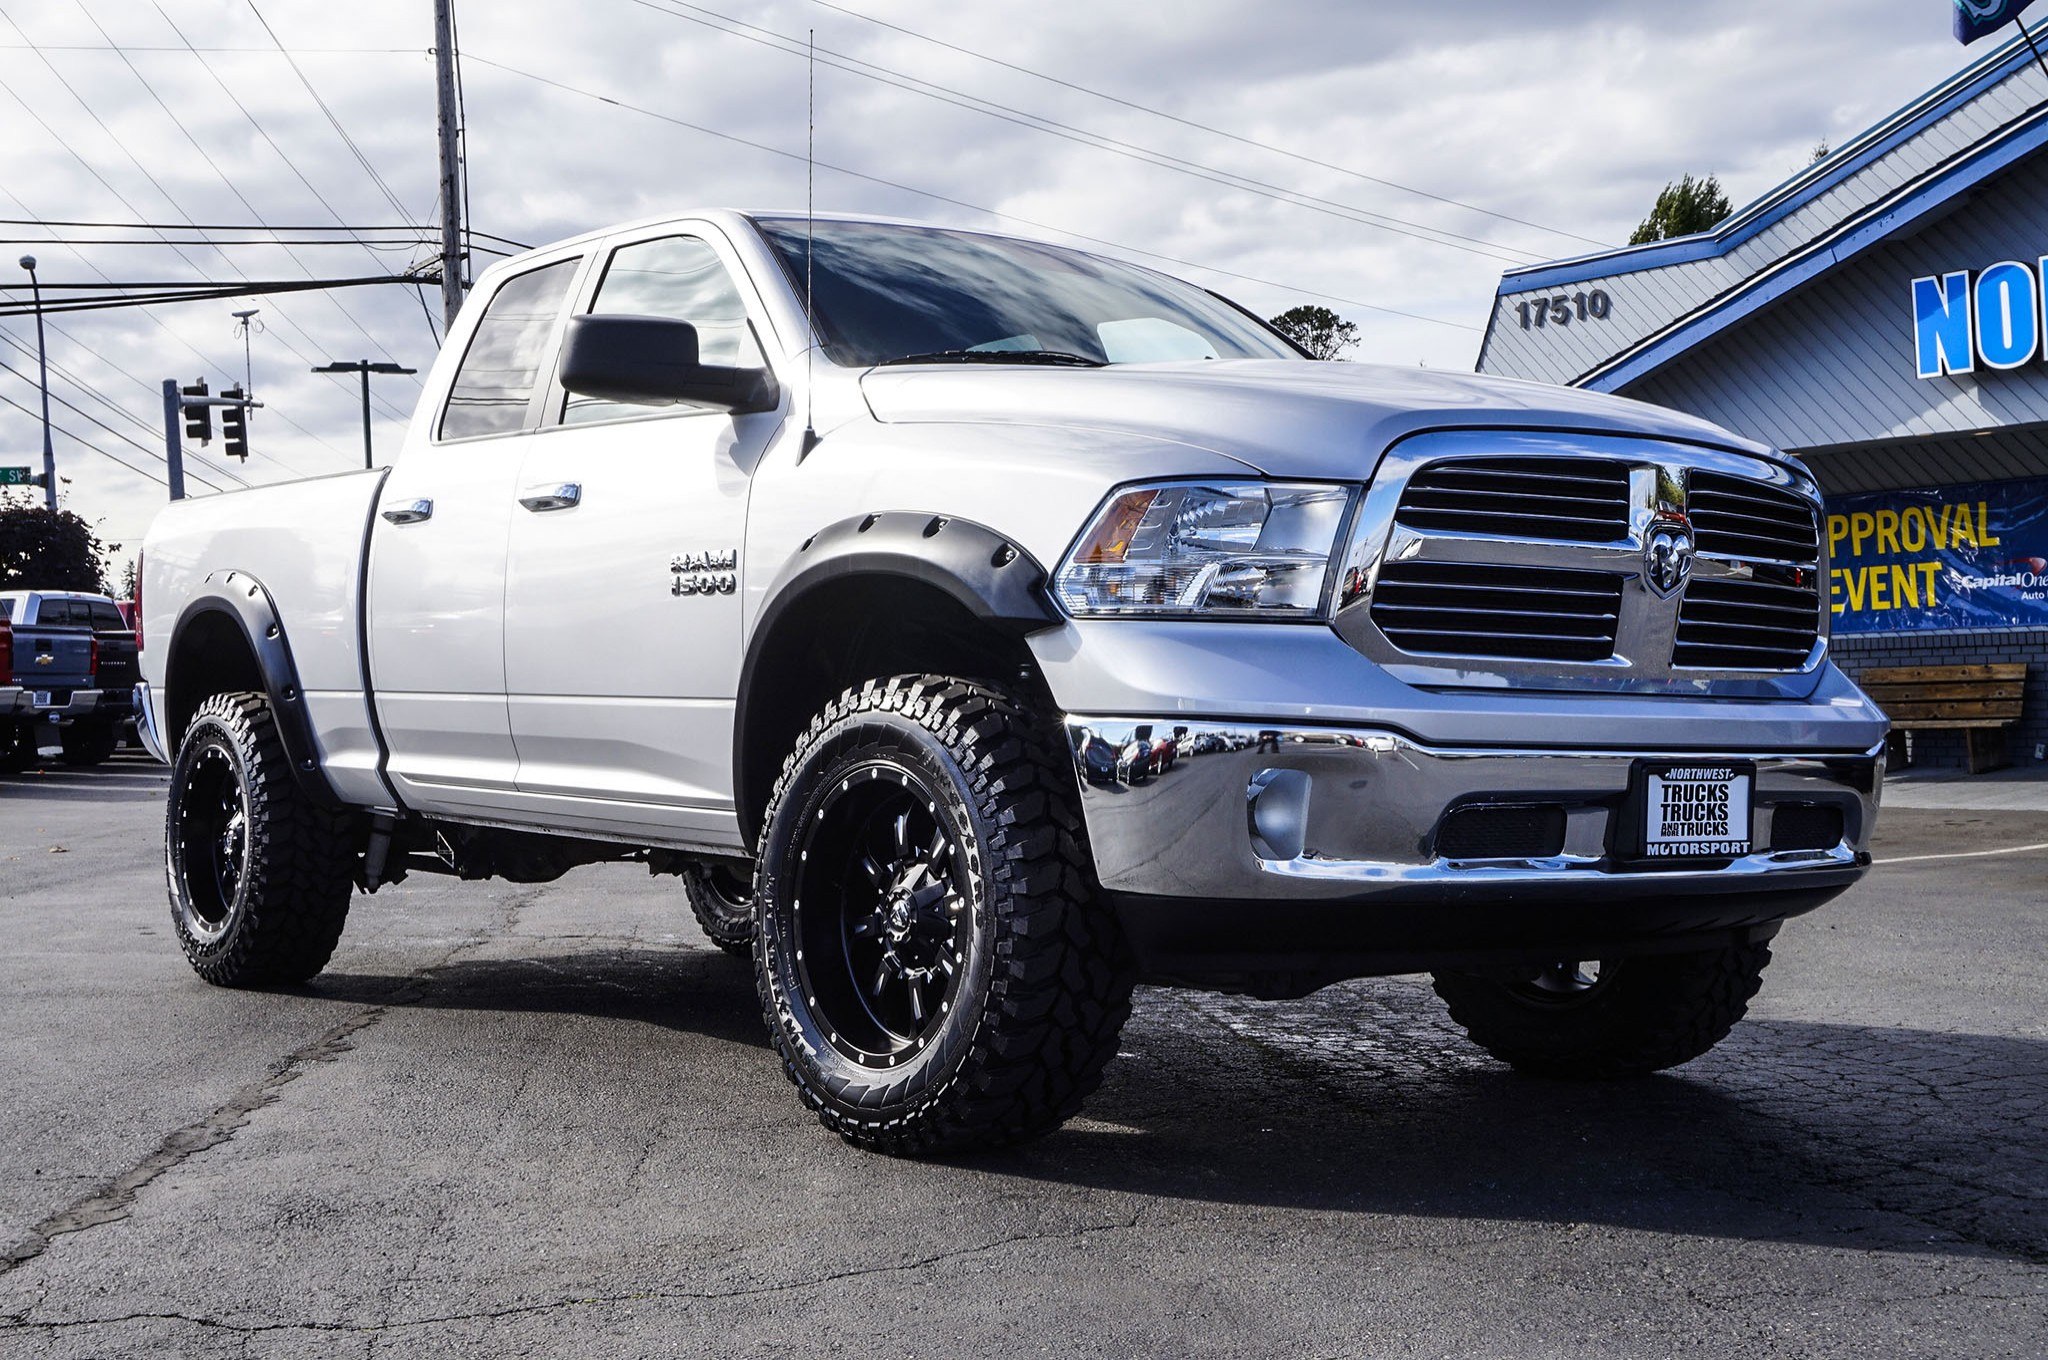 used lifted 2015 dodge ram 1500 big horn 4x4 truck for sale 34853. Black Bedroom Furniture Sets. Home Design Ideas